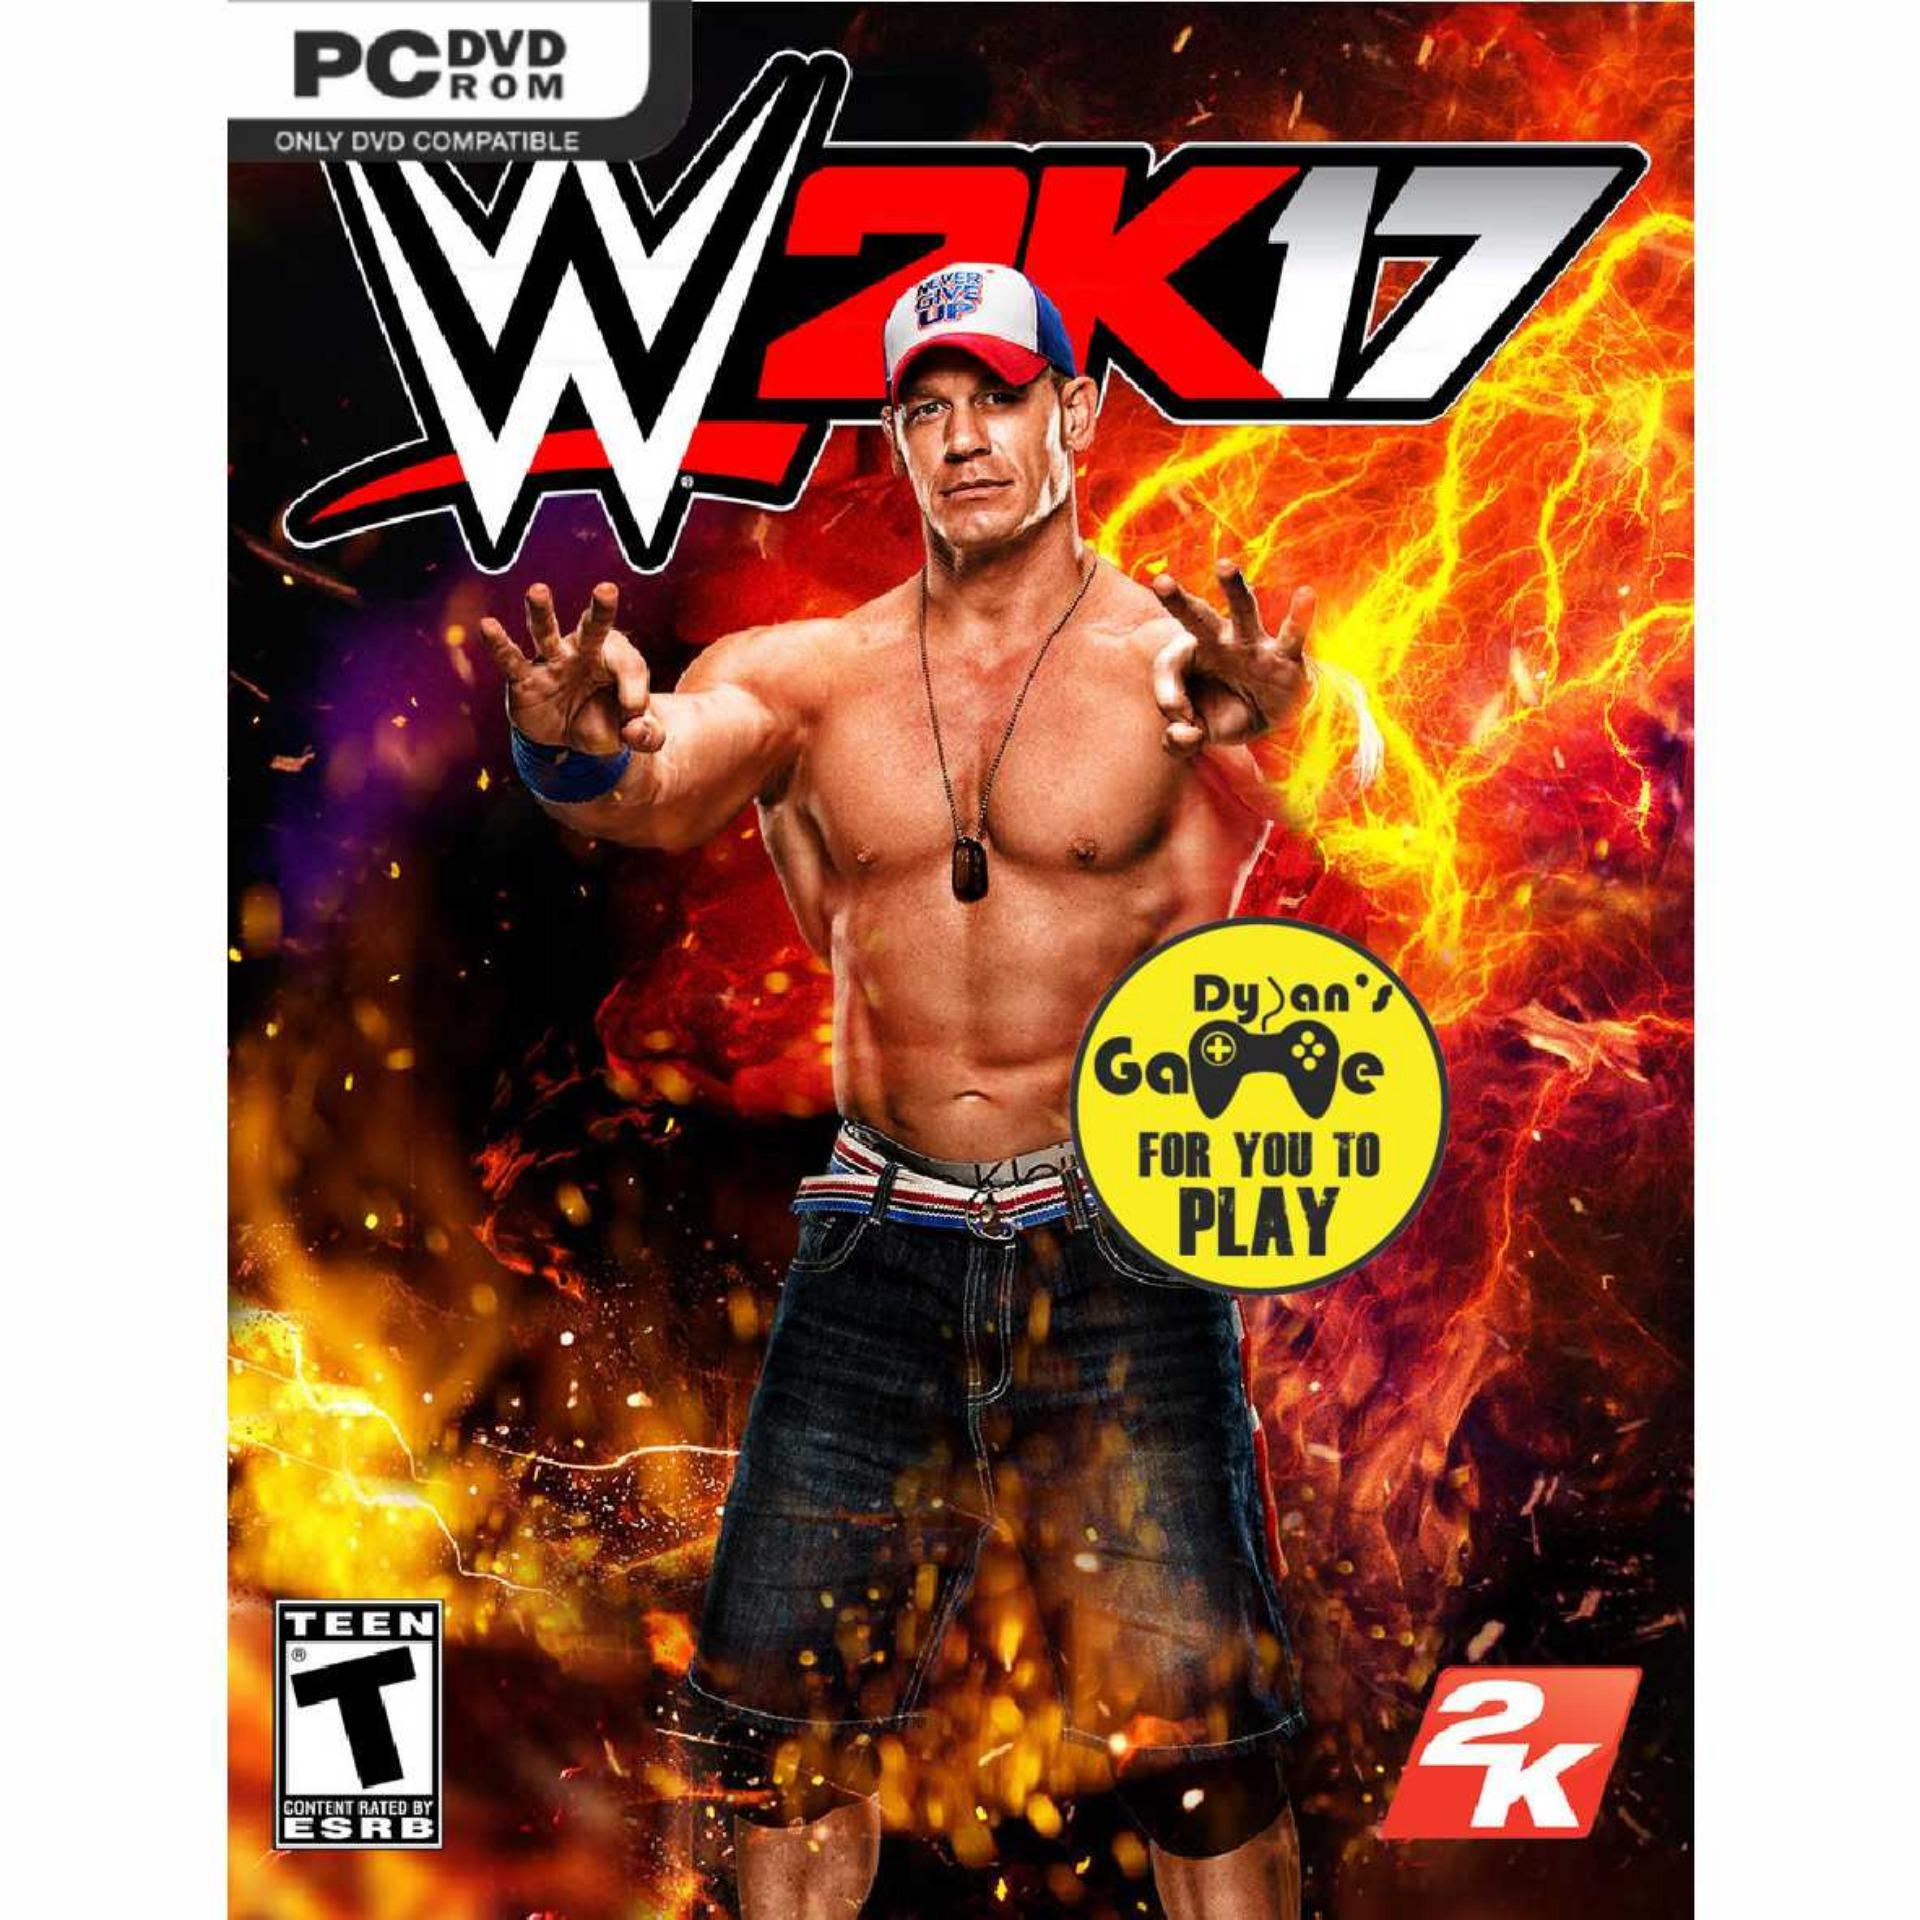 Wwe 2k17 Game Pc By Dylansgame By Dylansgame.